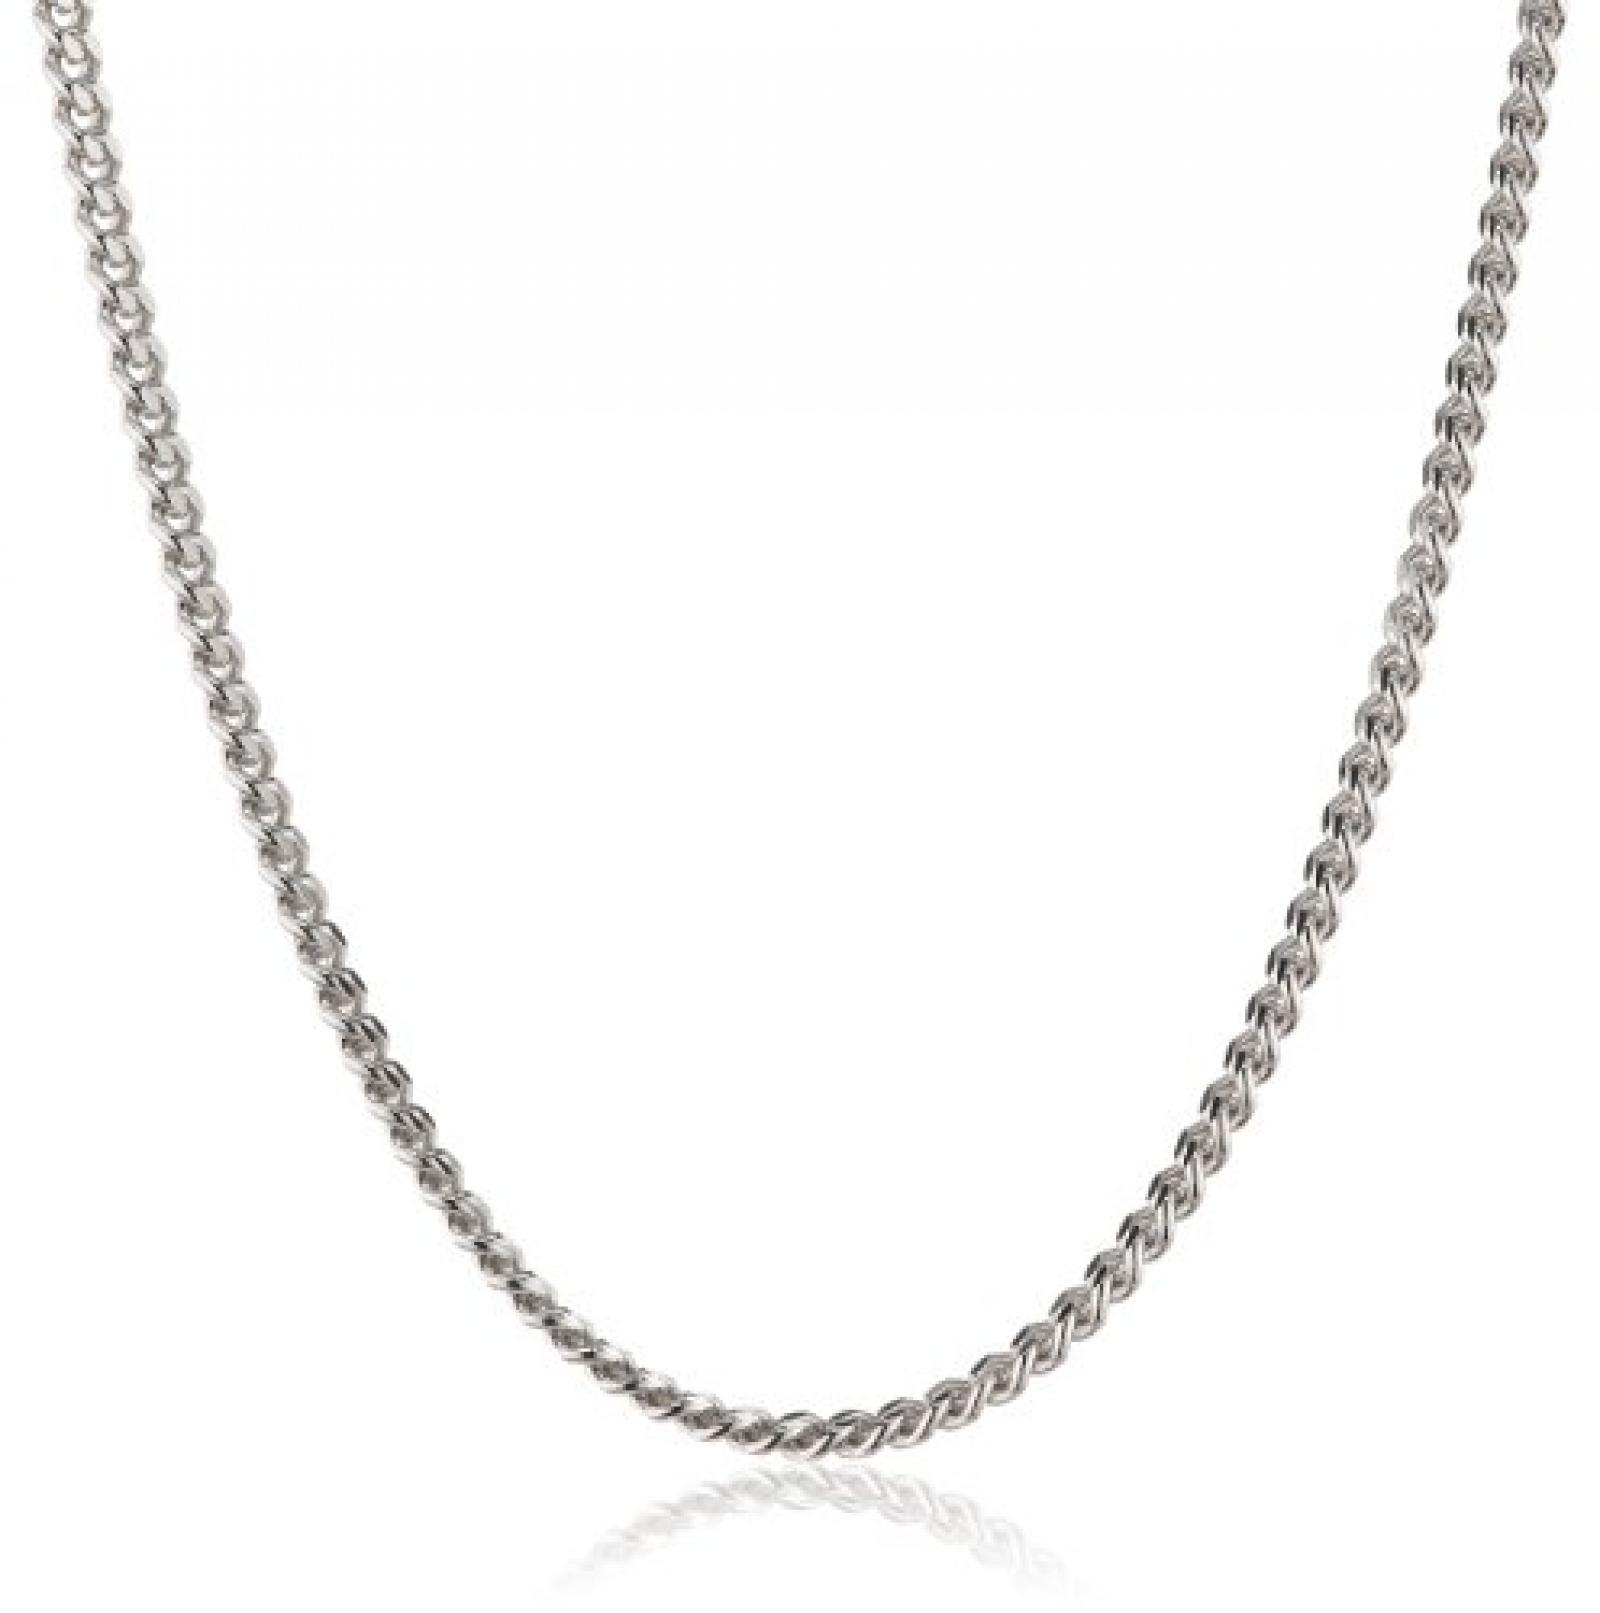 Amor Jewelry Unisex-Halskette 925 Sterling Silber 73943